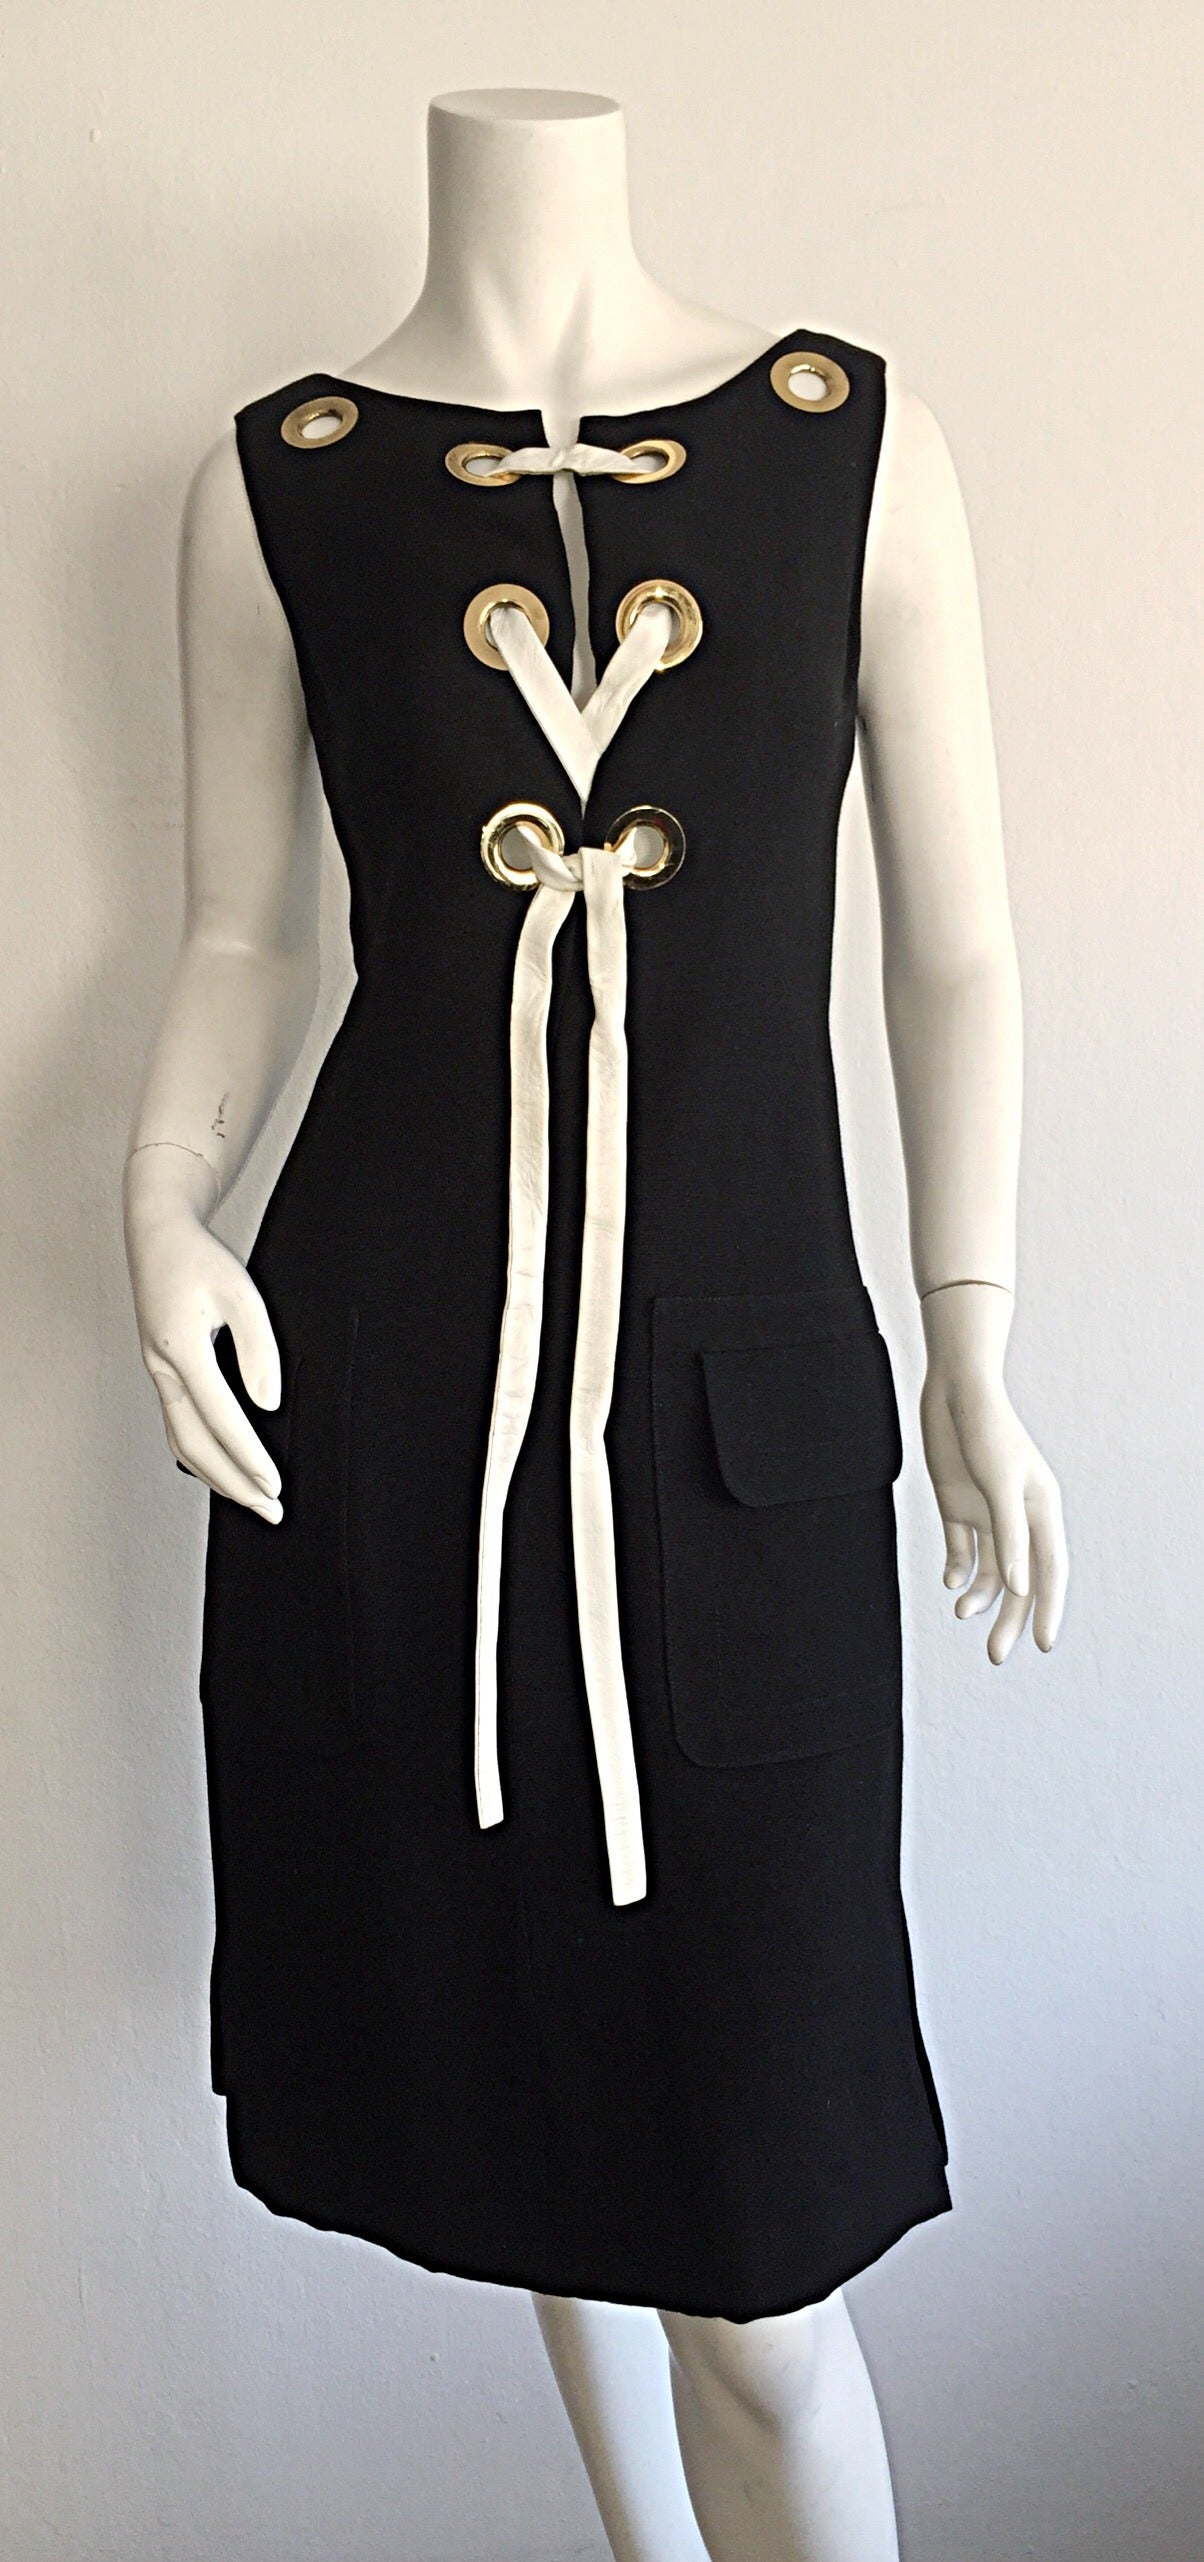 Rare 1960s Pierre Cardin Black Grommet Space Age 60s Vintage Linen Shift Dress 7